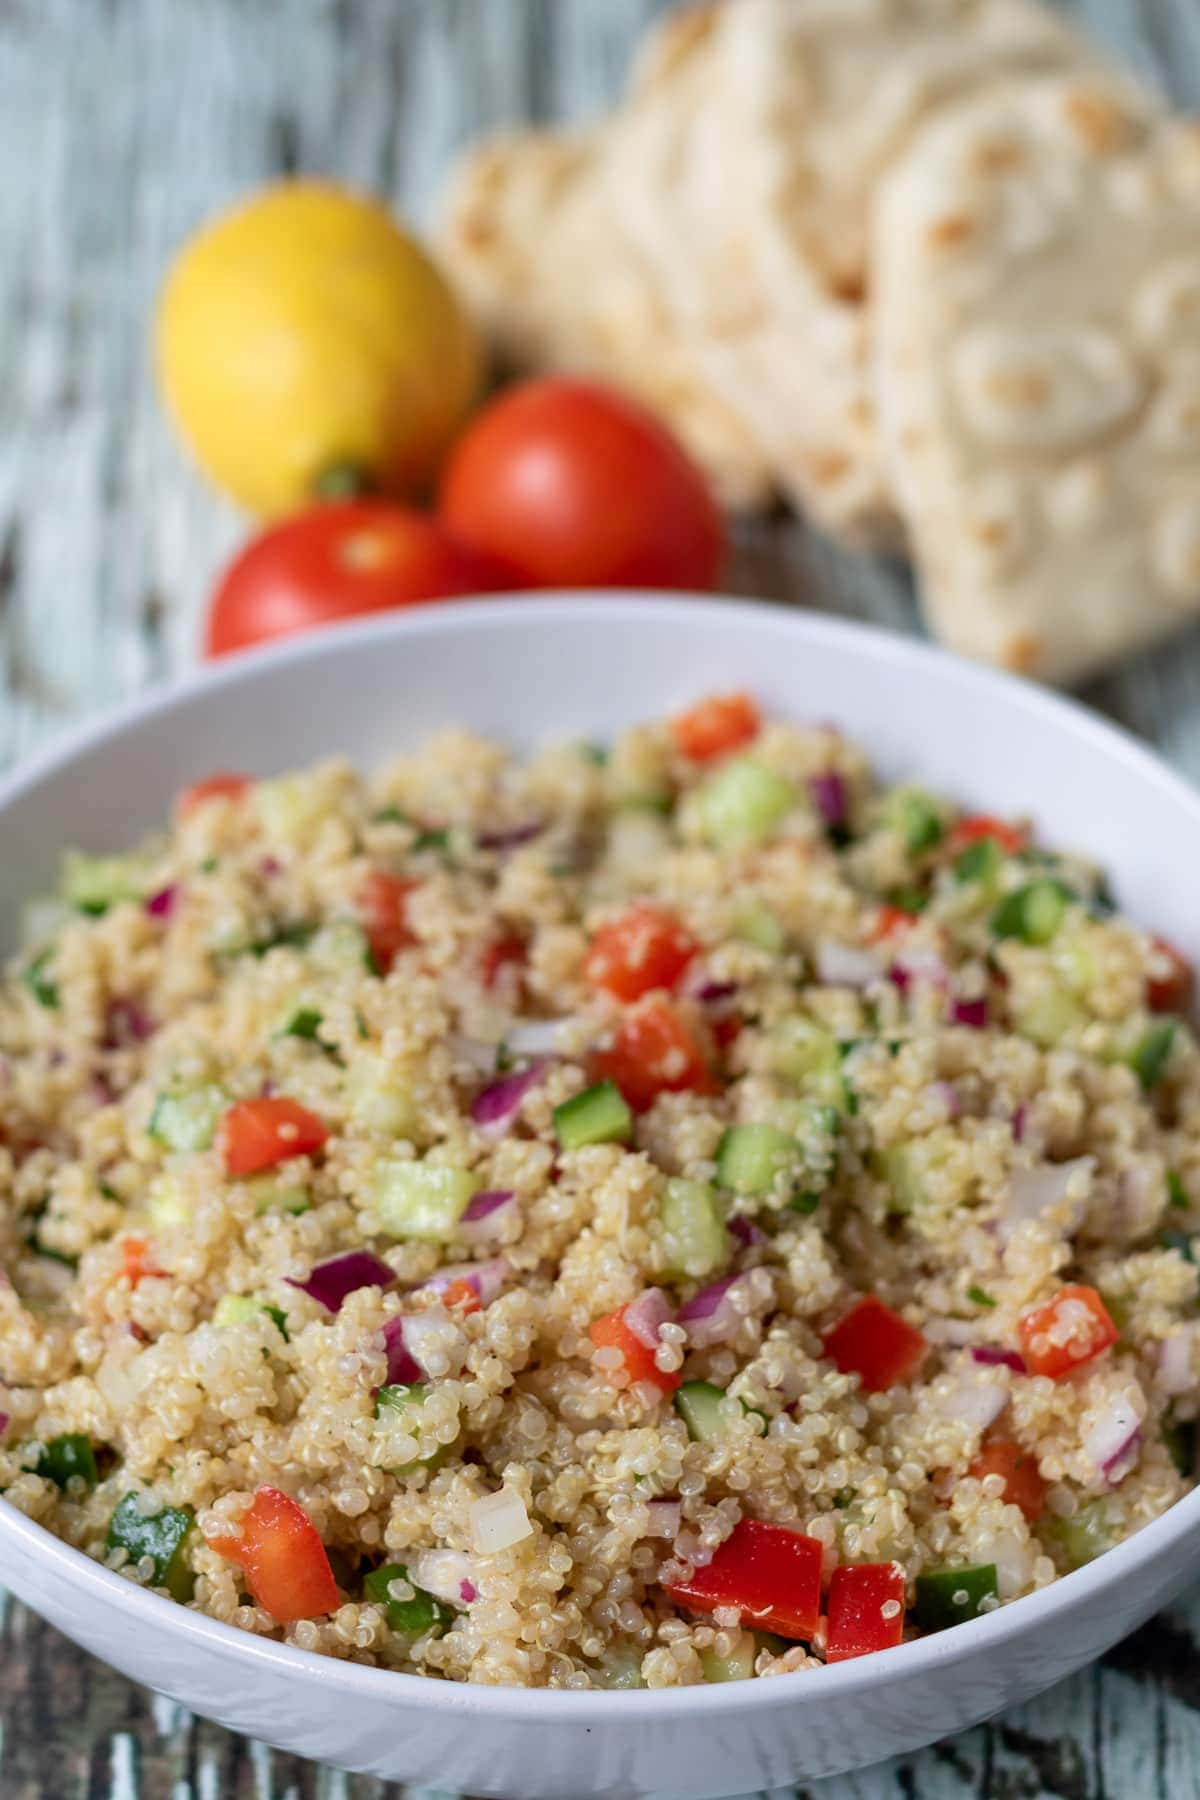 Close up of a bowl of quick quinoa salad with two tomatoes, a lemon and stack of flatbreads in the background.